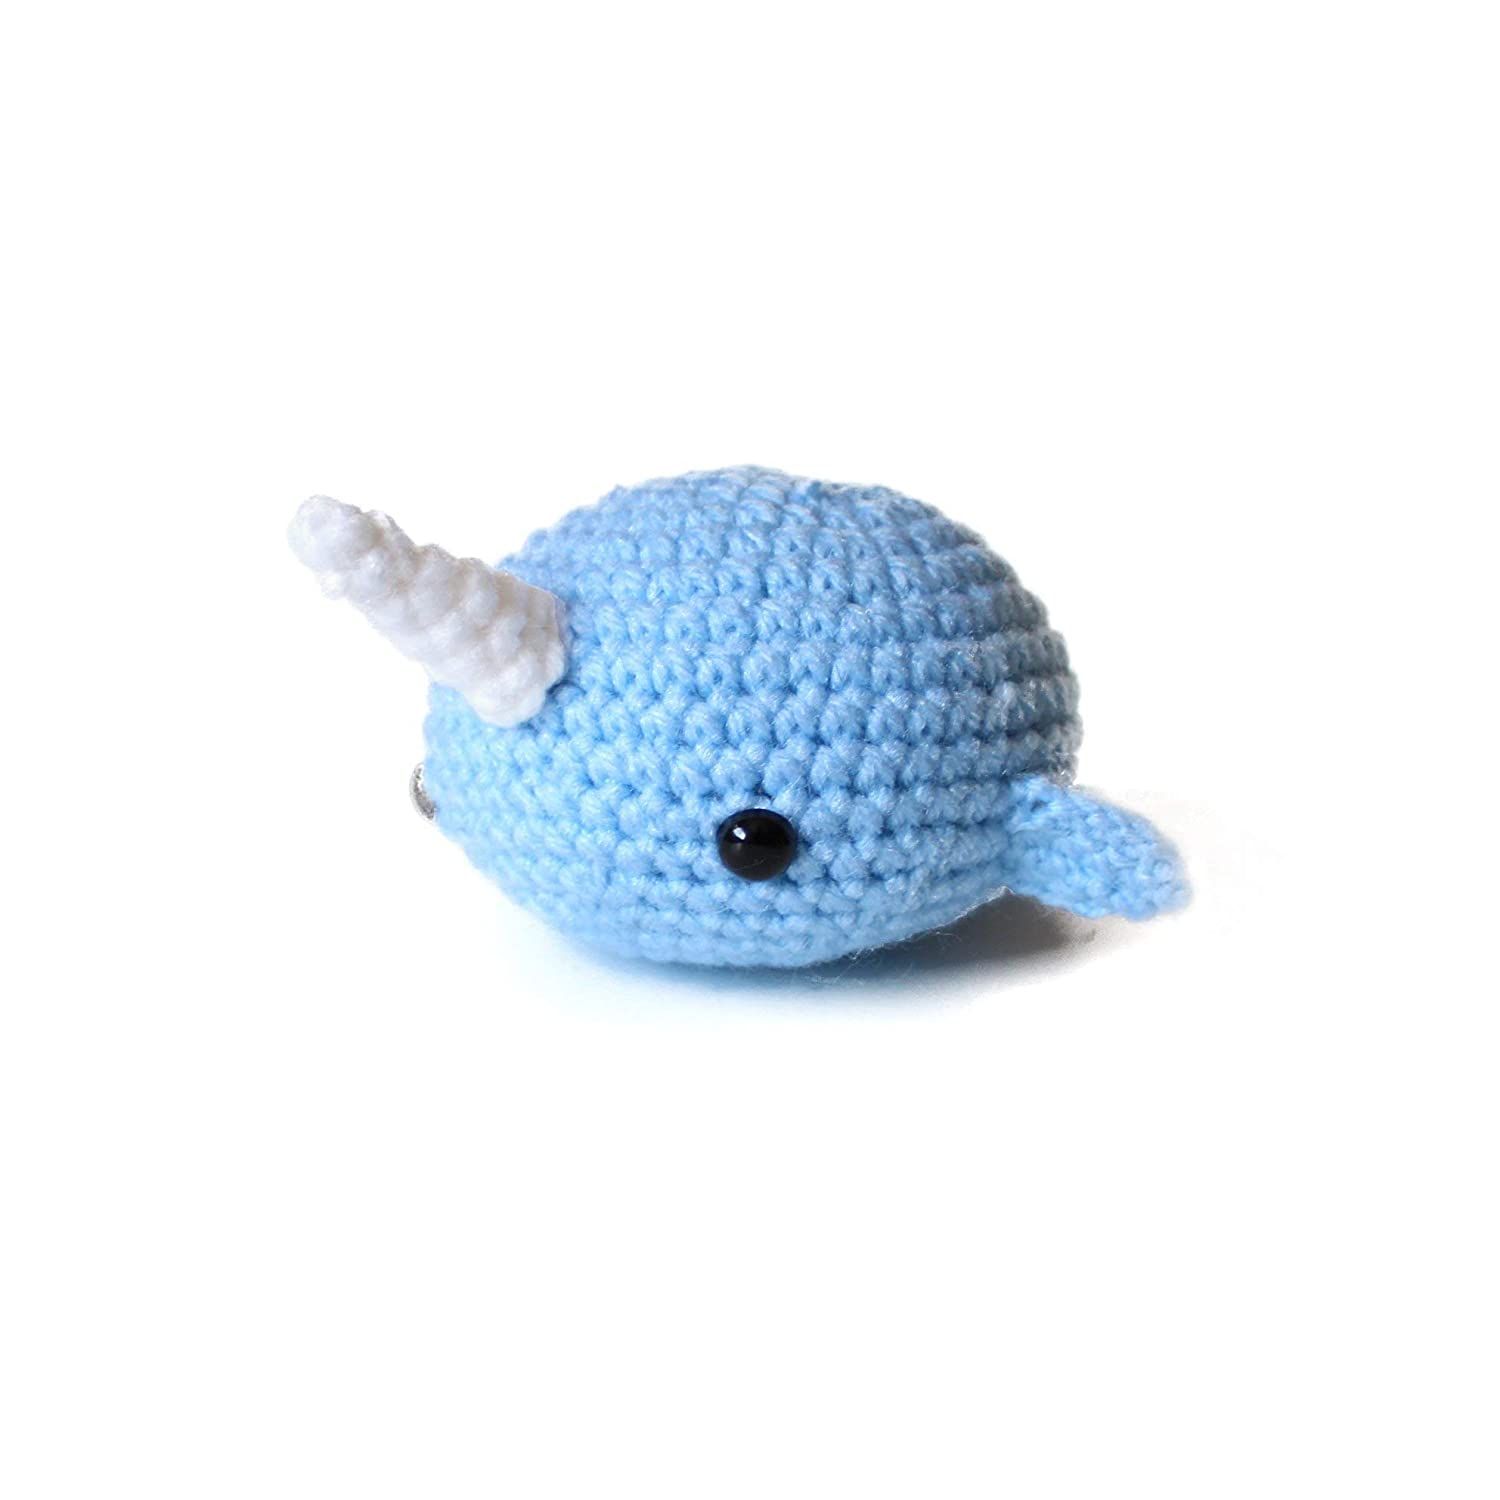 Amigurumi Narwhal free pattern - A little love everyday! | 1500x1500